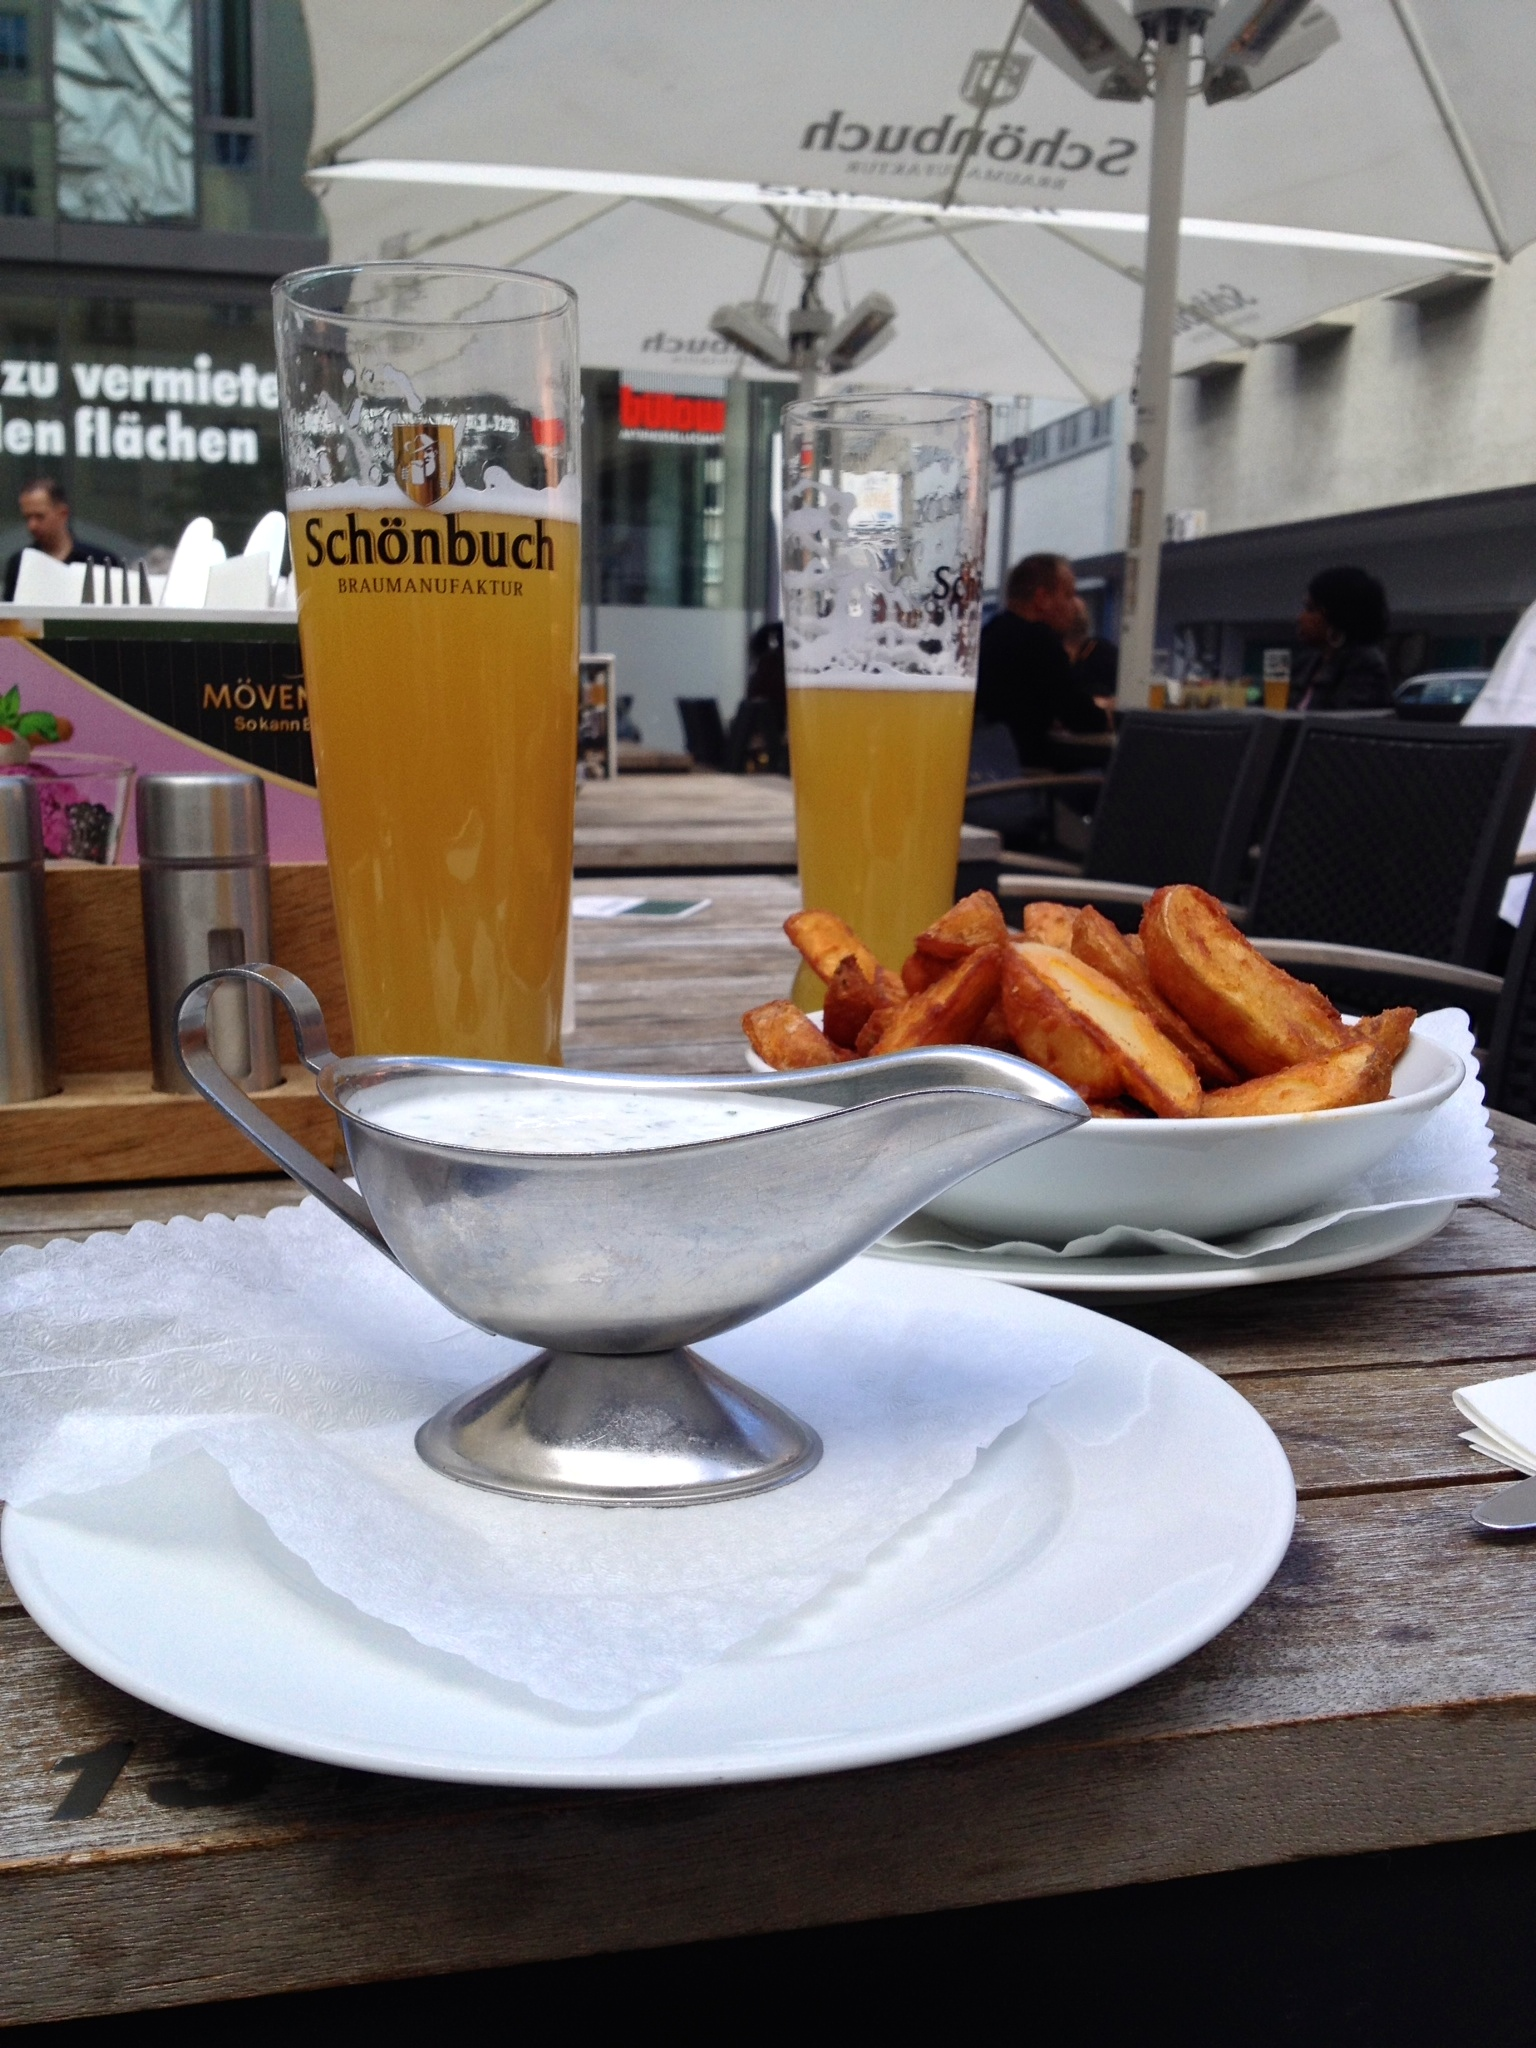 The delicious  ofenkartoffel  (oven fries) with herb dip and  hefeweizen  in the background